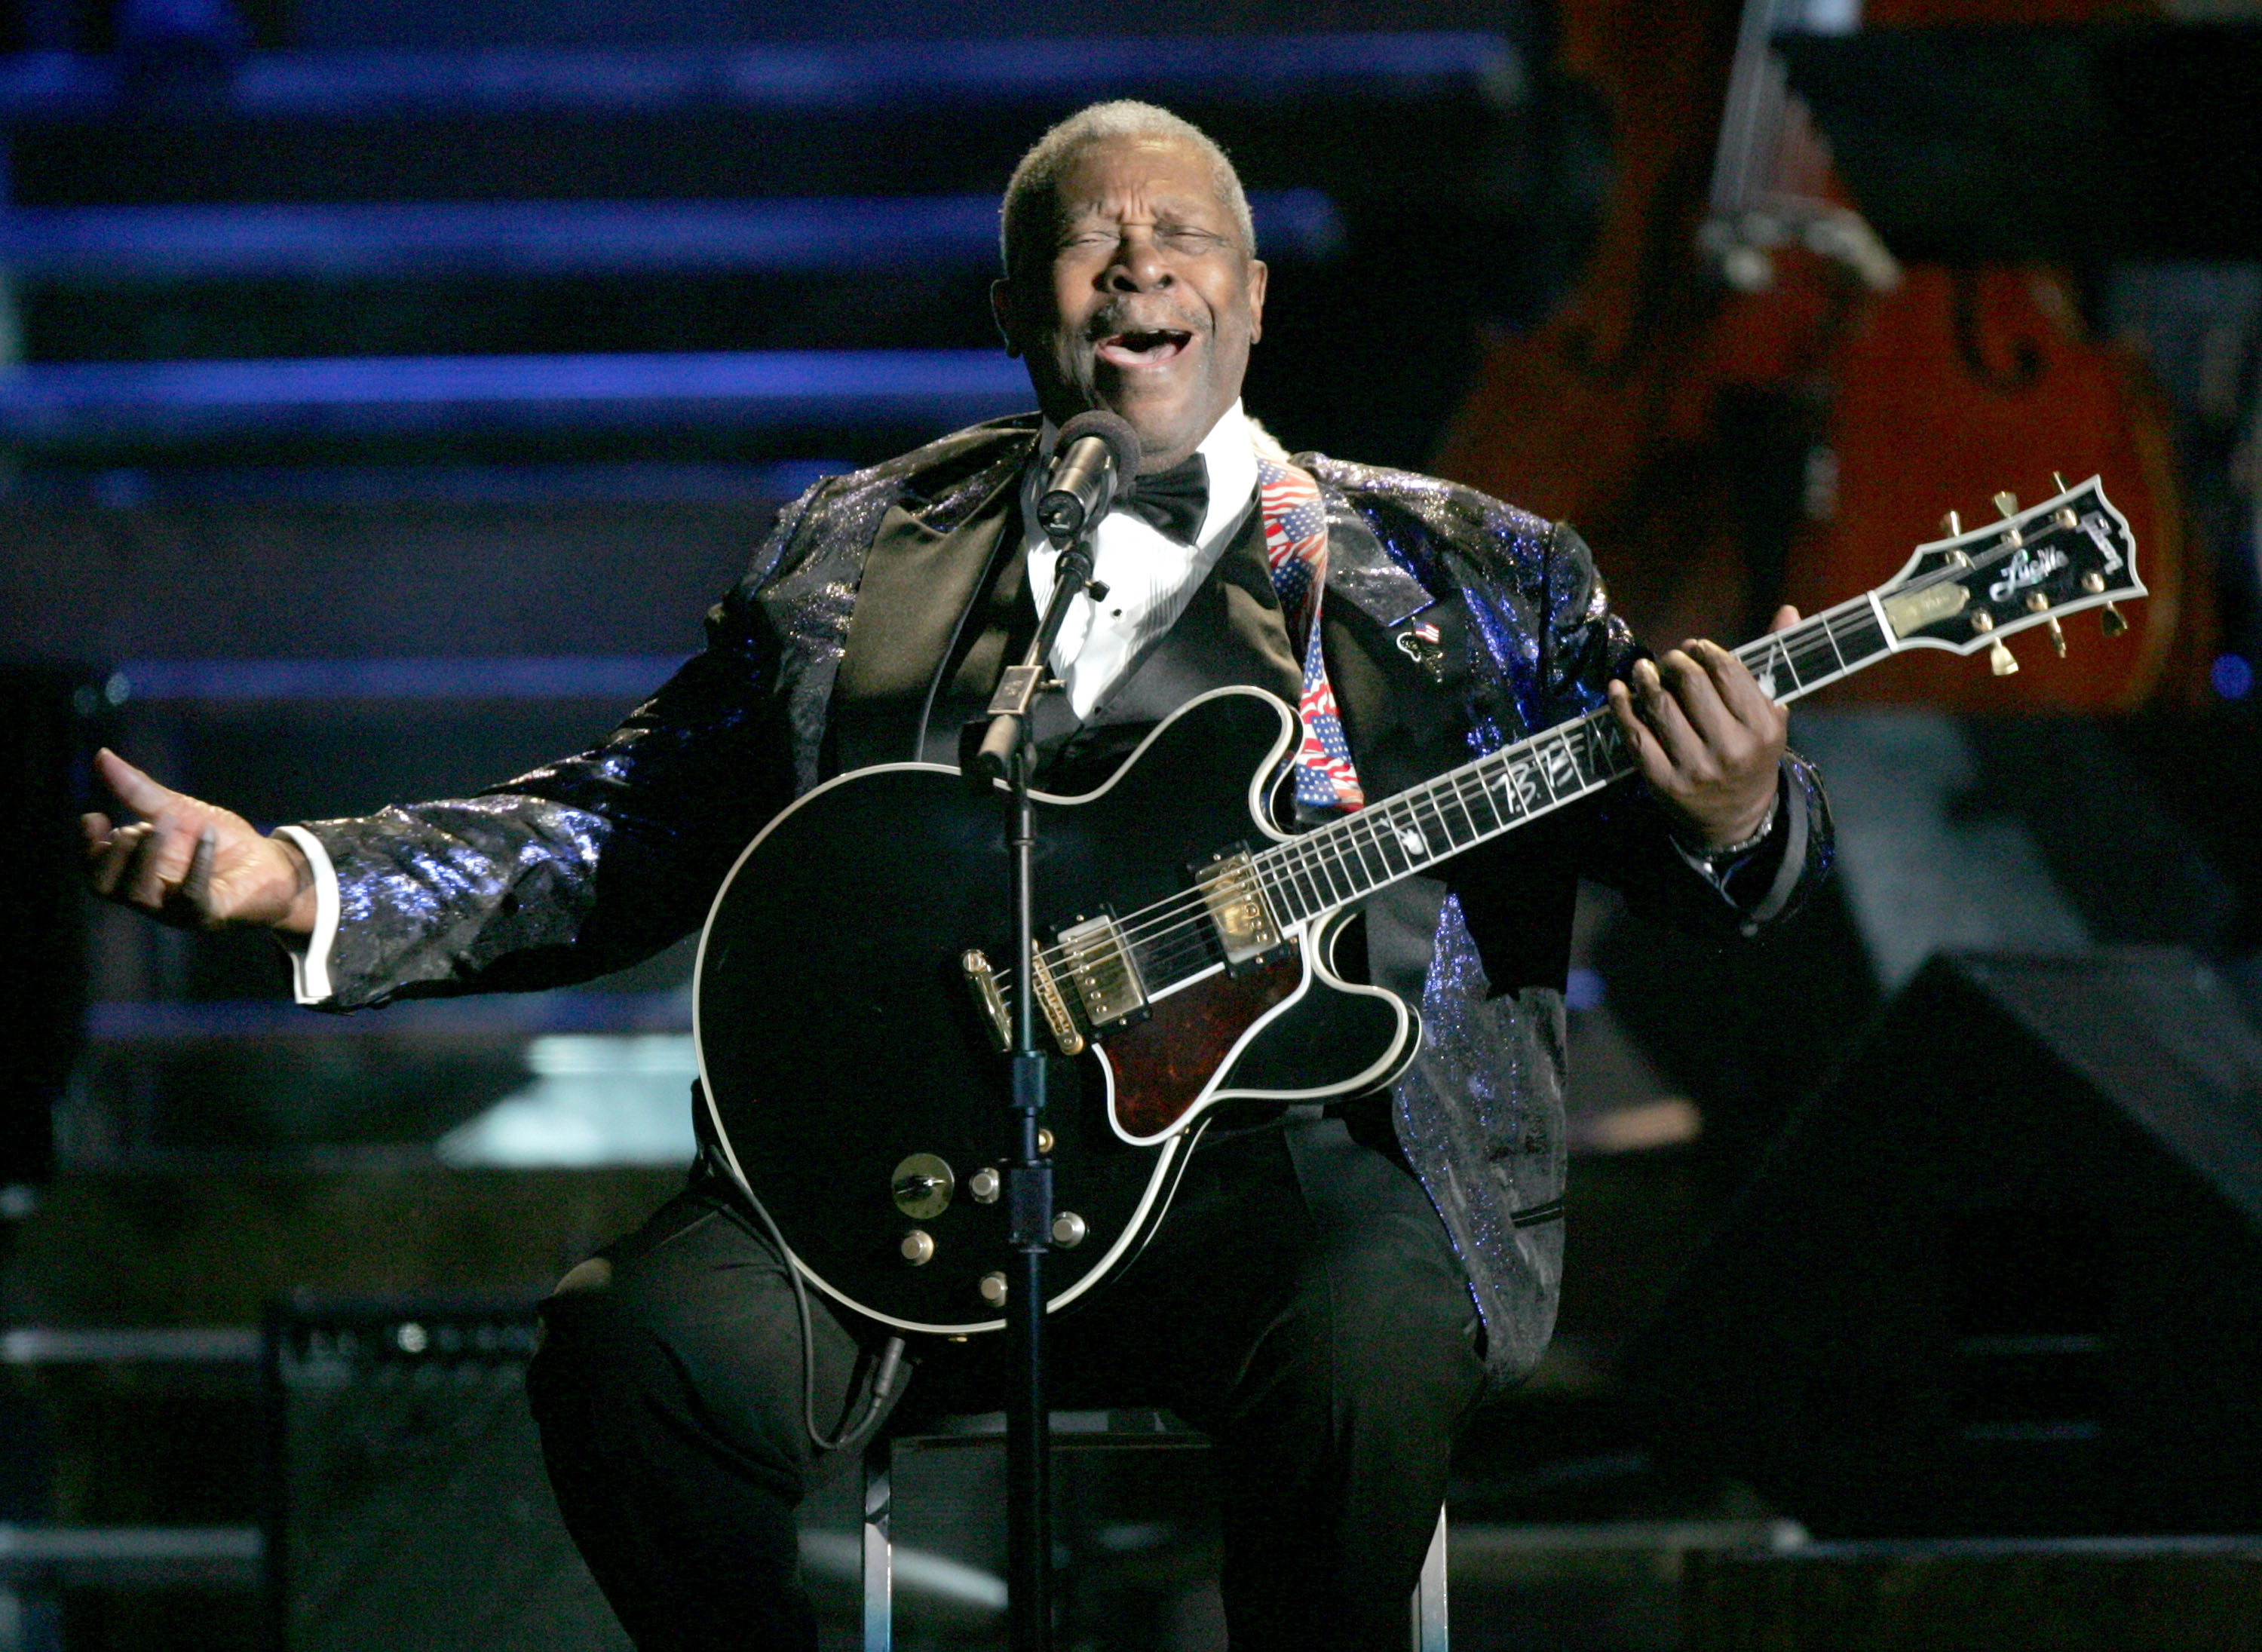 B.B. King performs in Los Angles in 2004 at a Ray Charles tribute concert. (Getty)